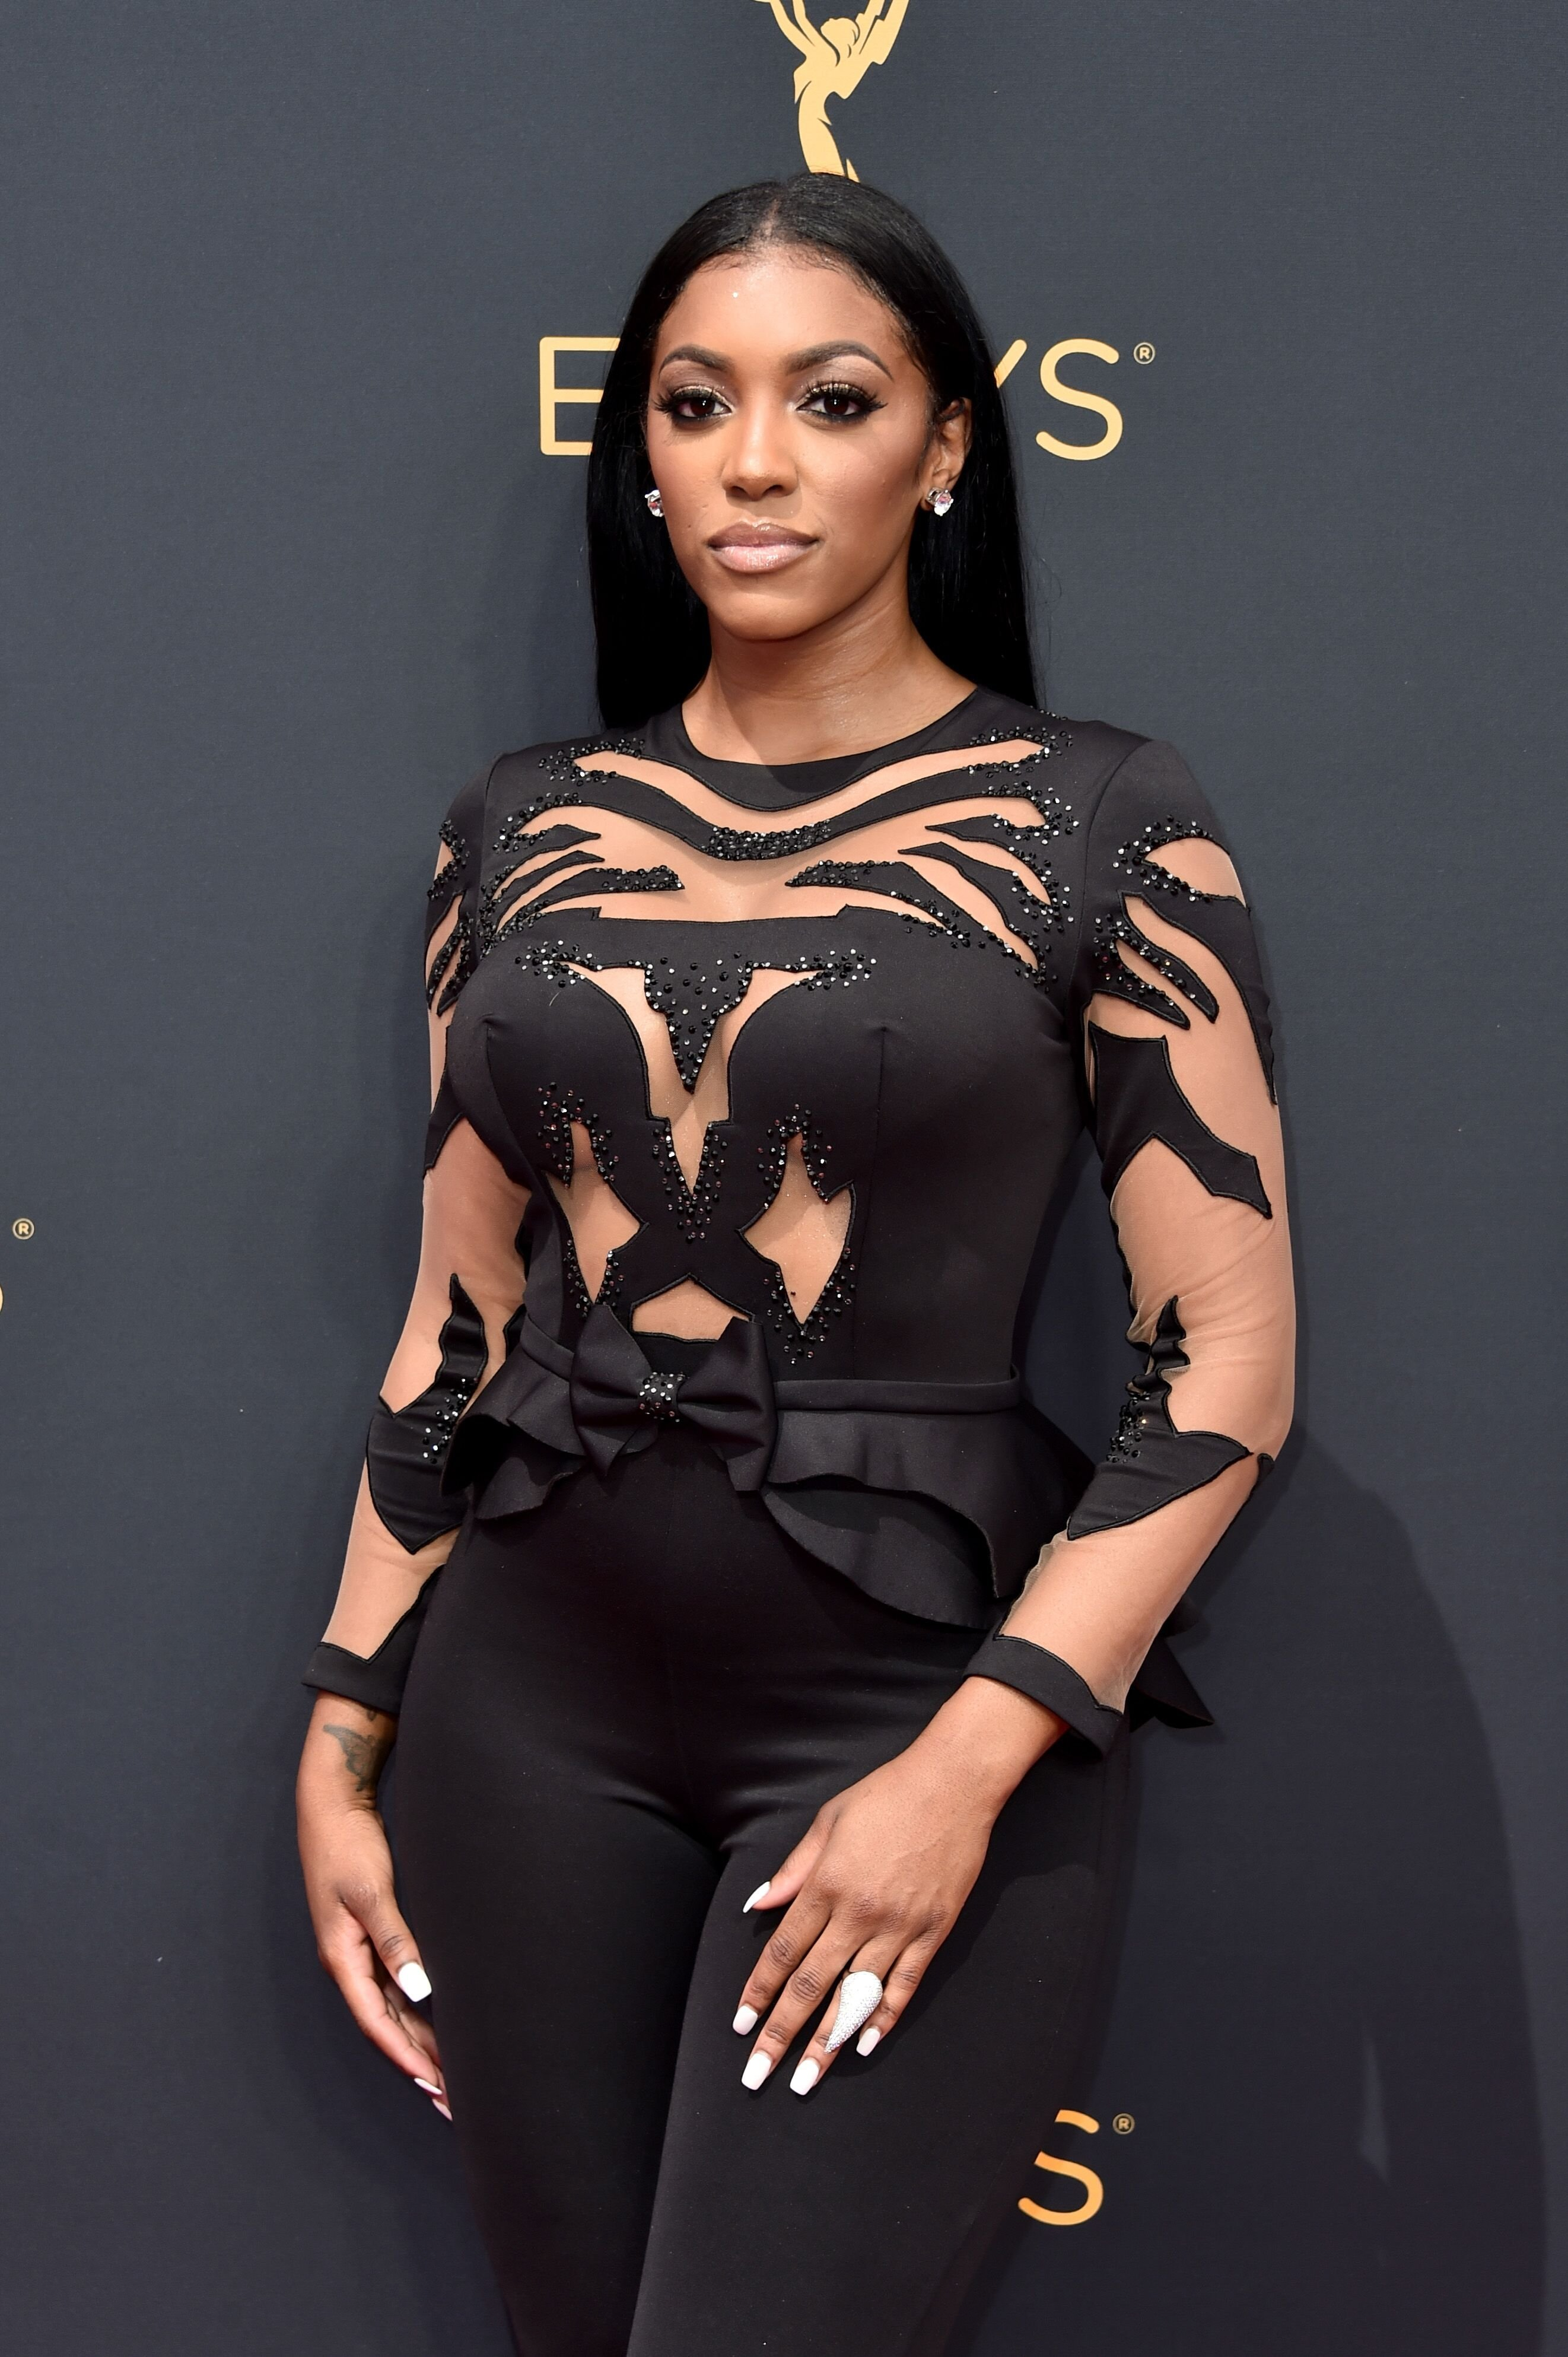 Porsha Williams at an Emmy's event | Source: Getty Images/GlobalImagesUkraine